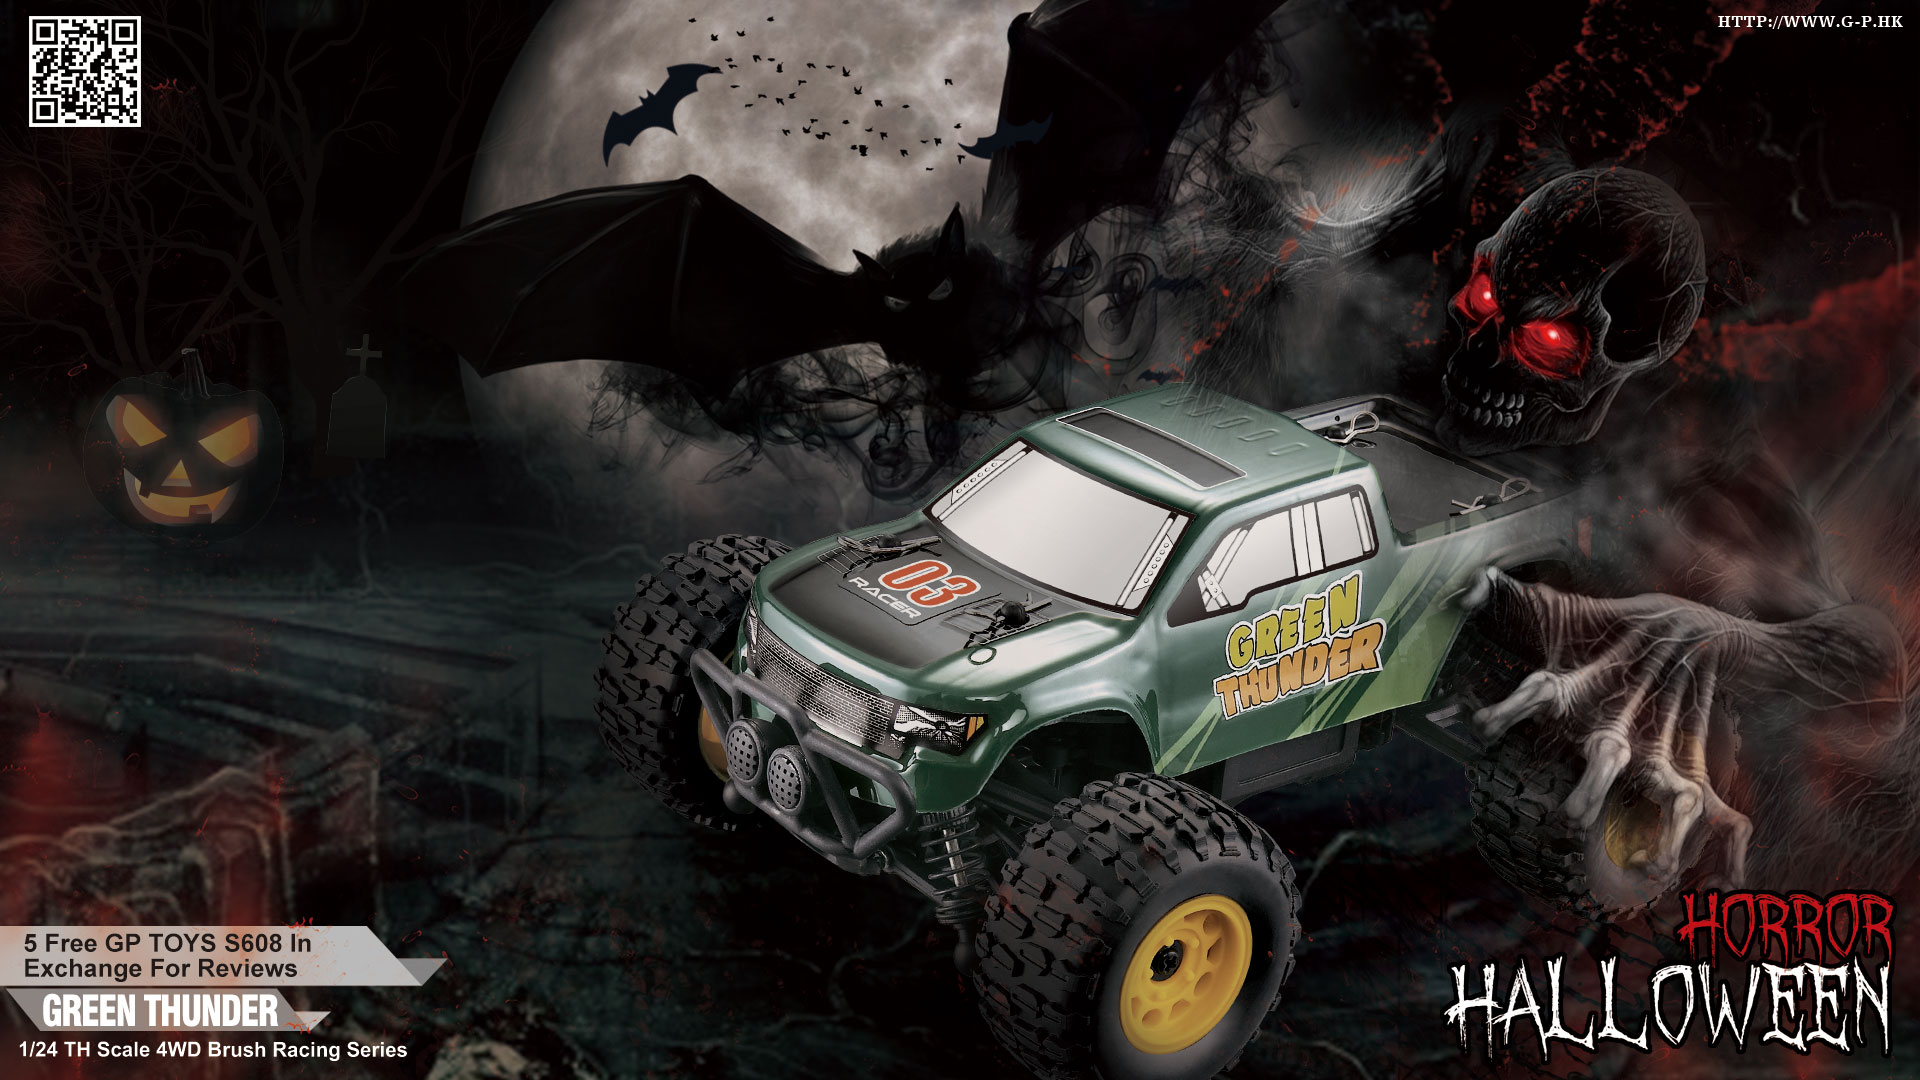 gptoys-s608-4wd-rc-truck